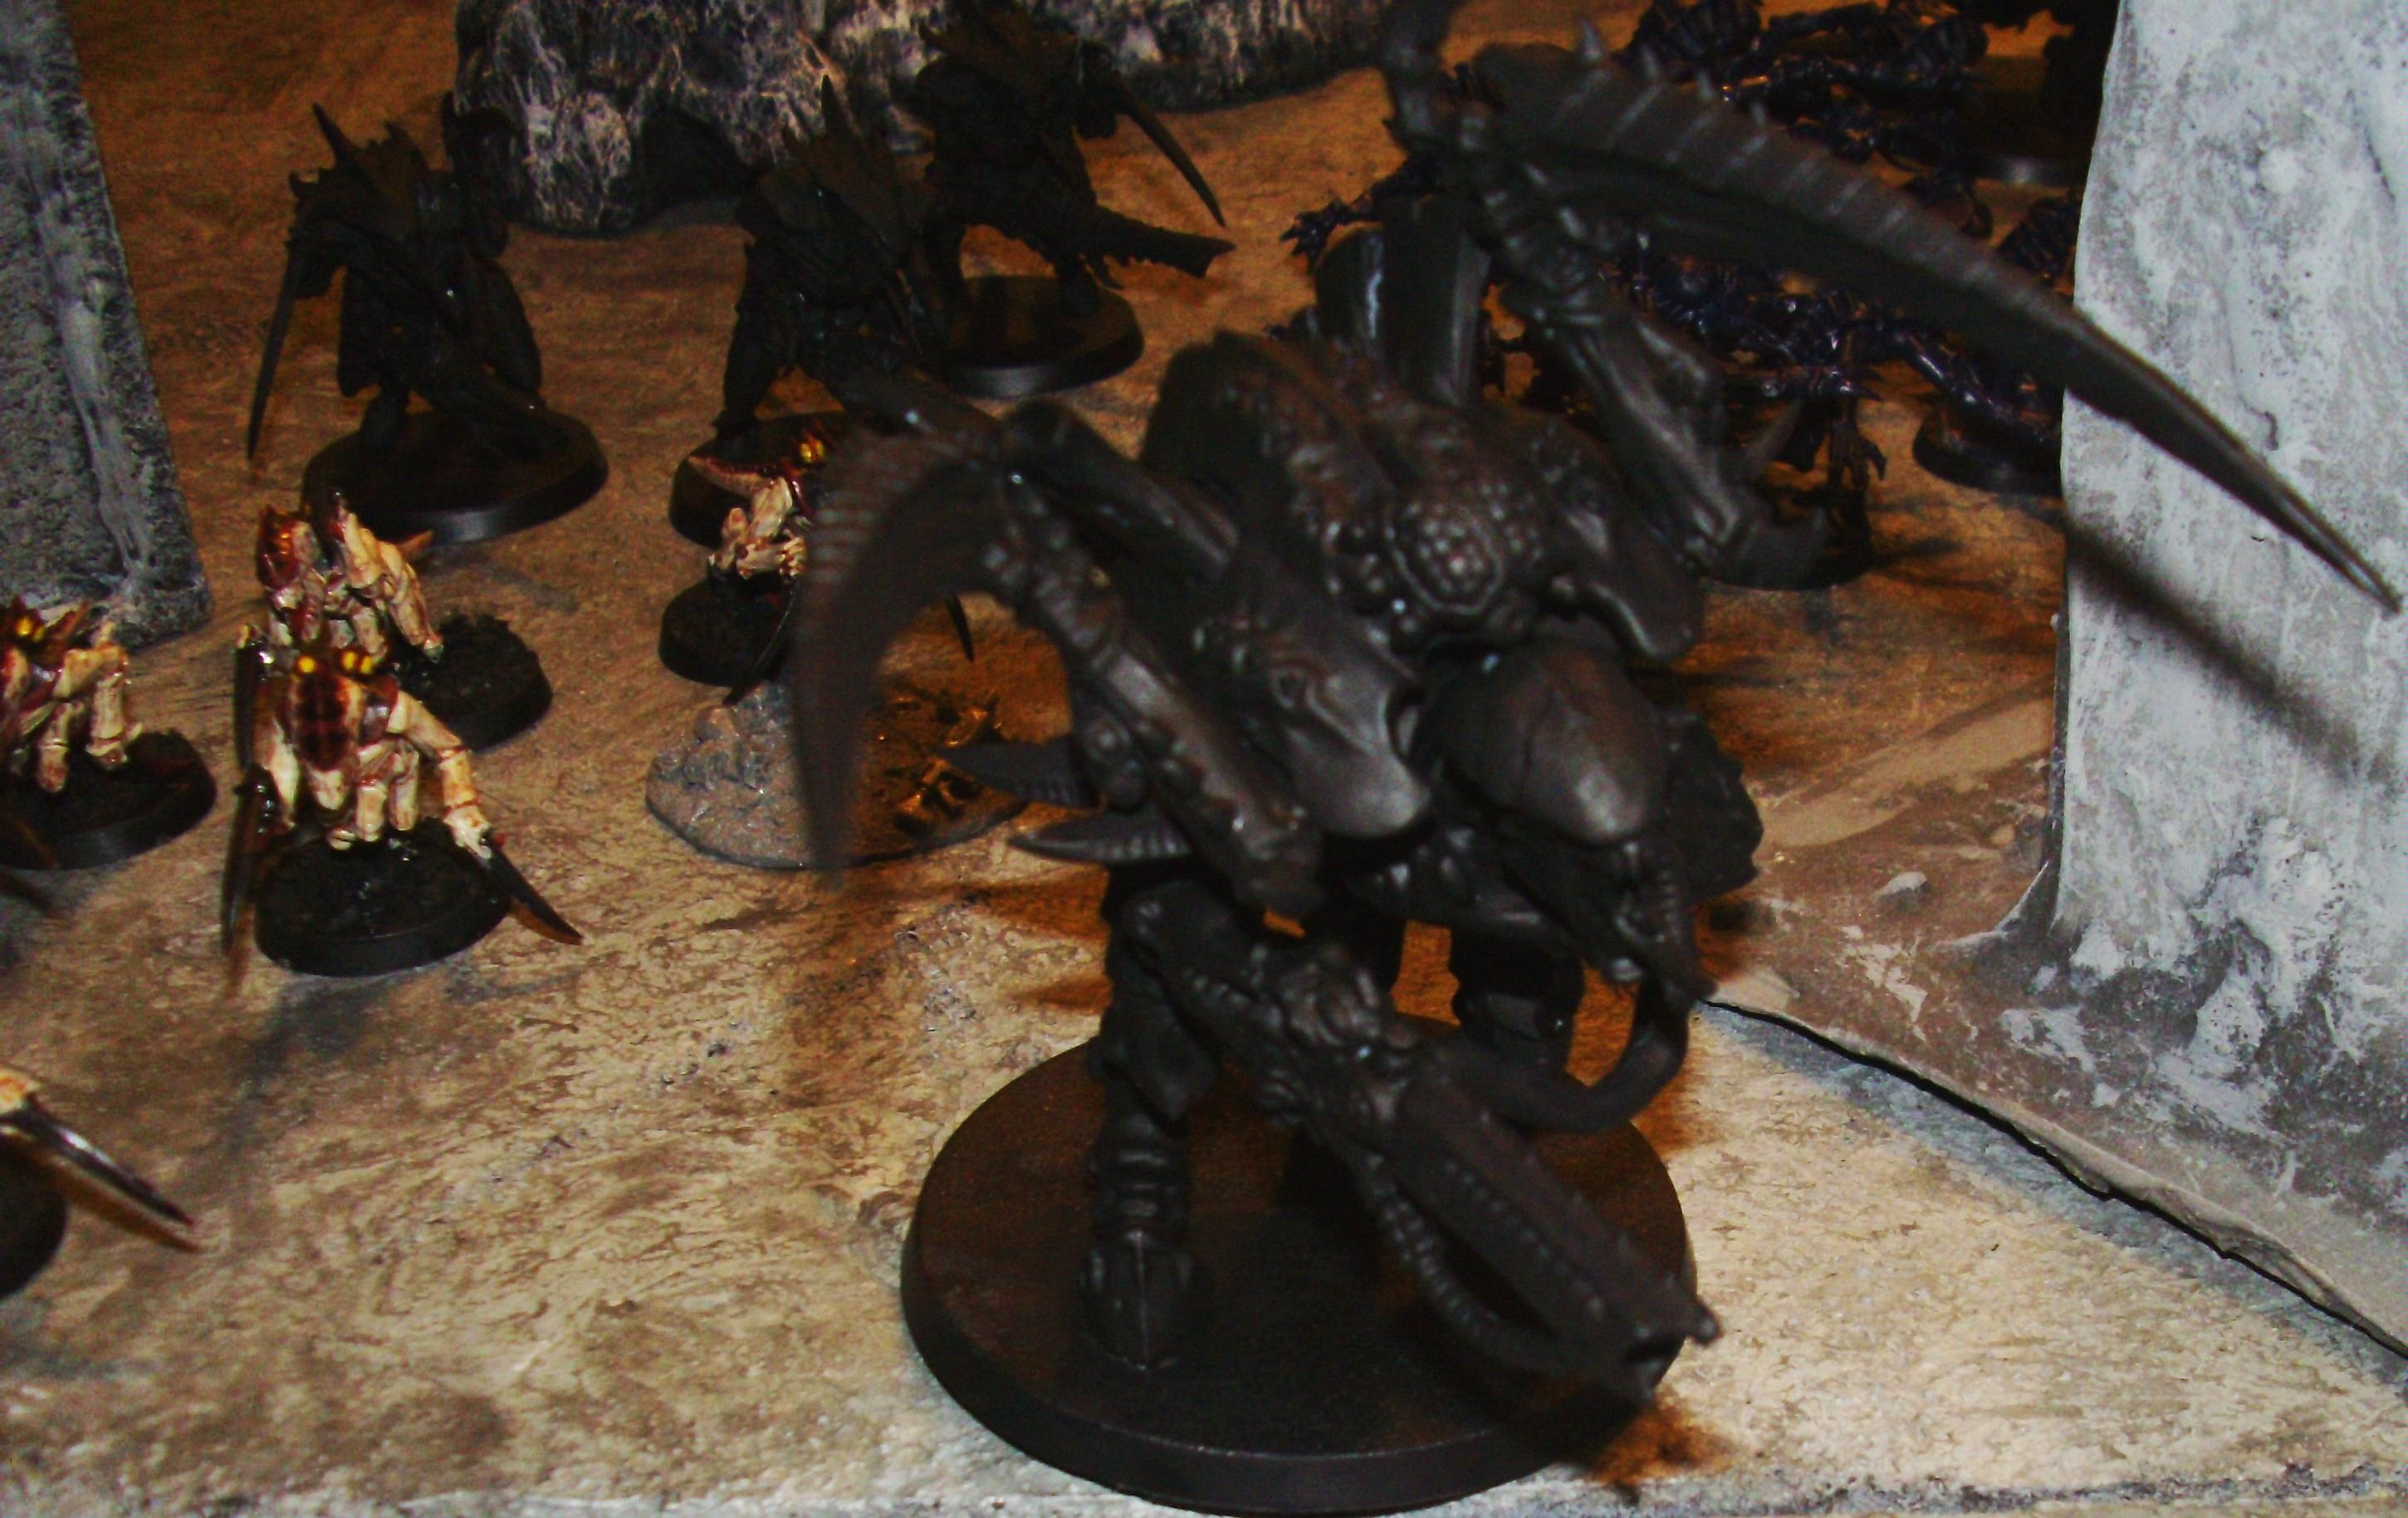 Carnifex 1 of 2 with genestealers behind